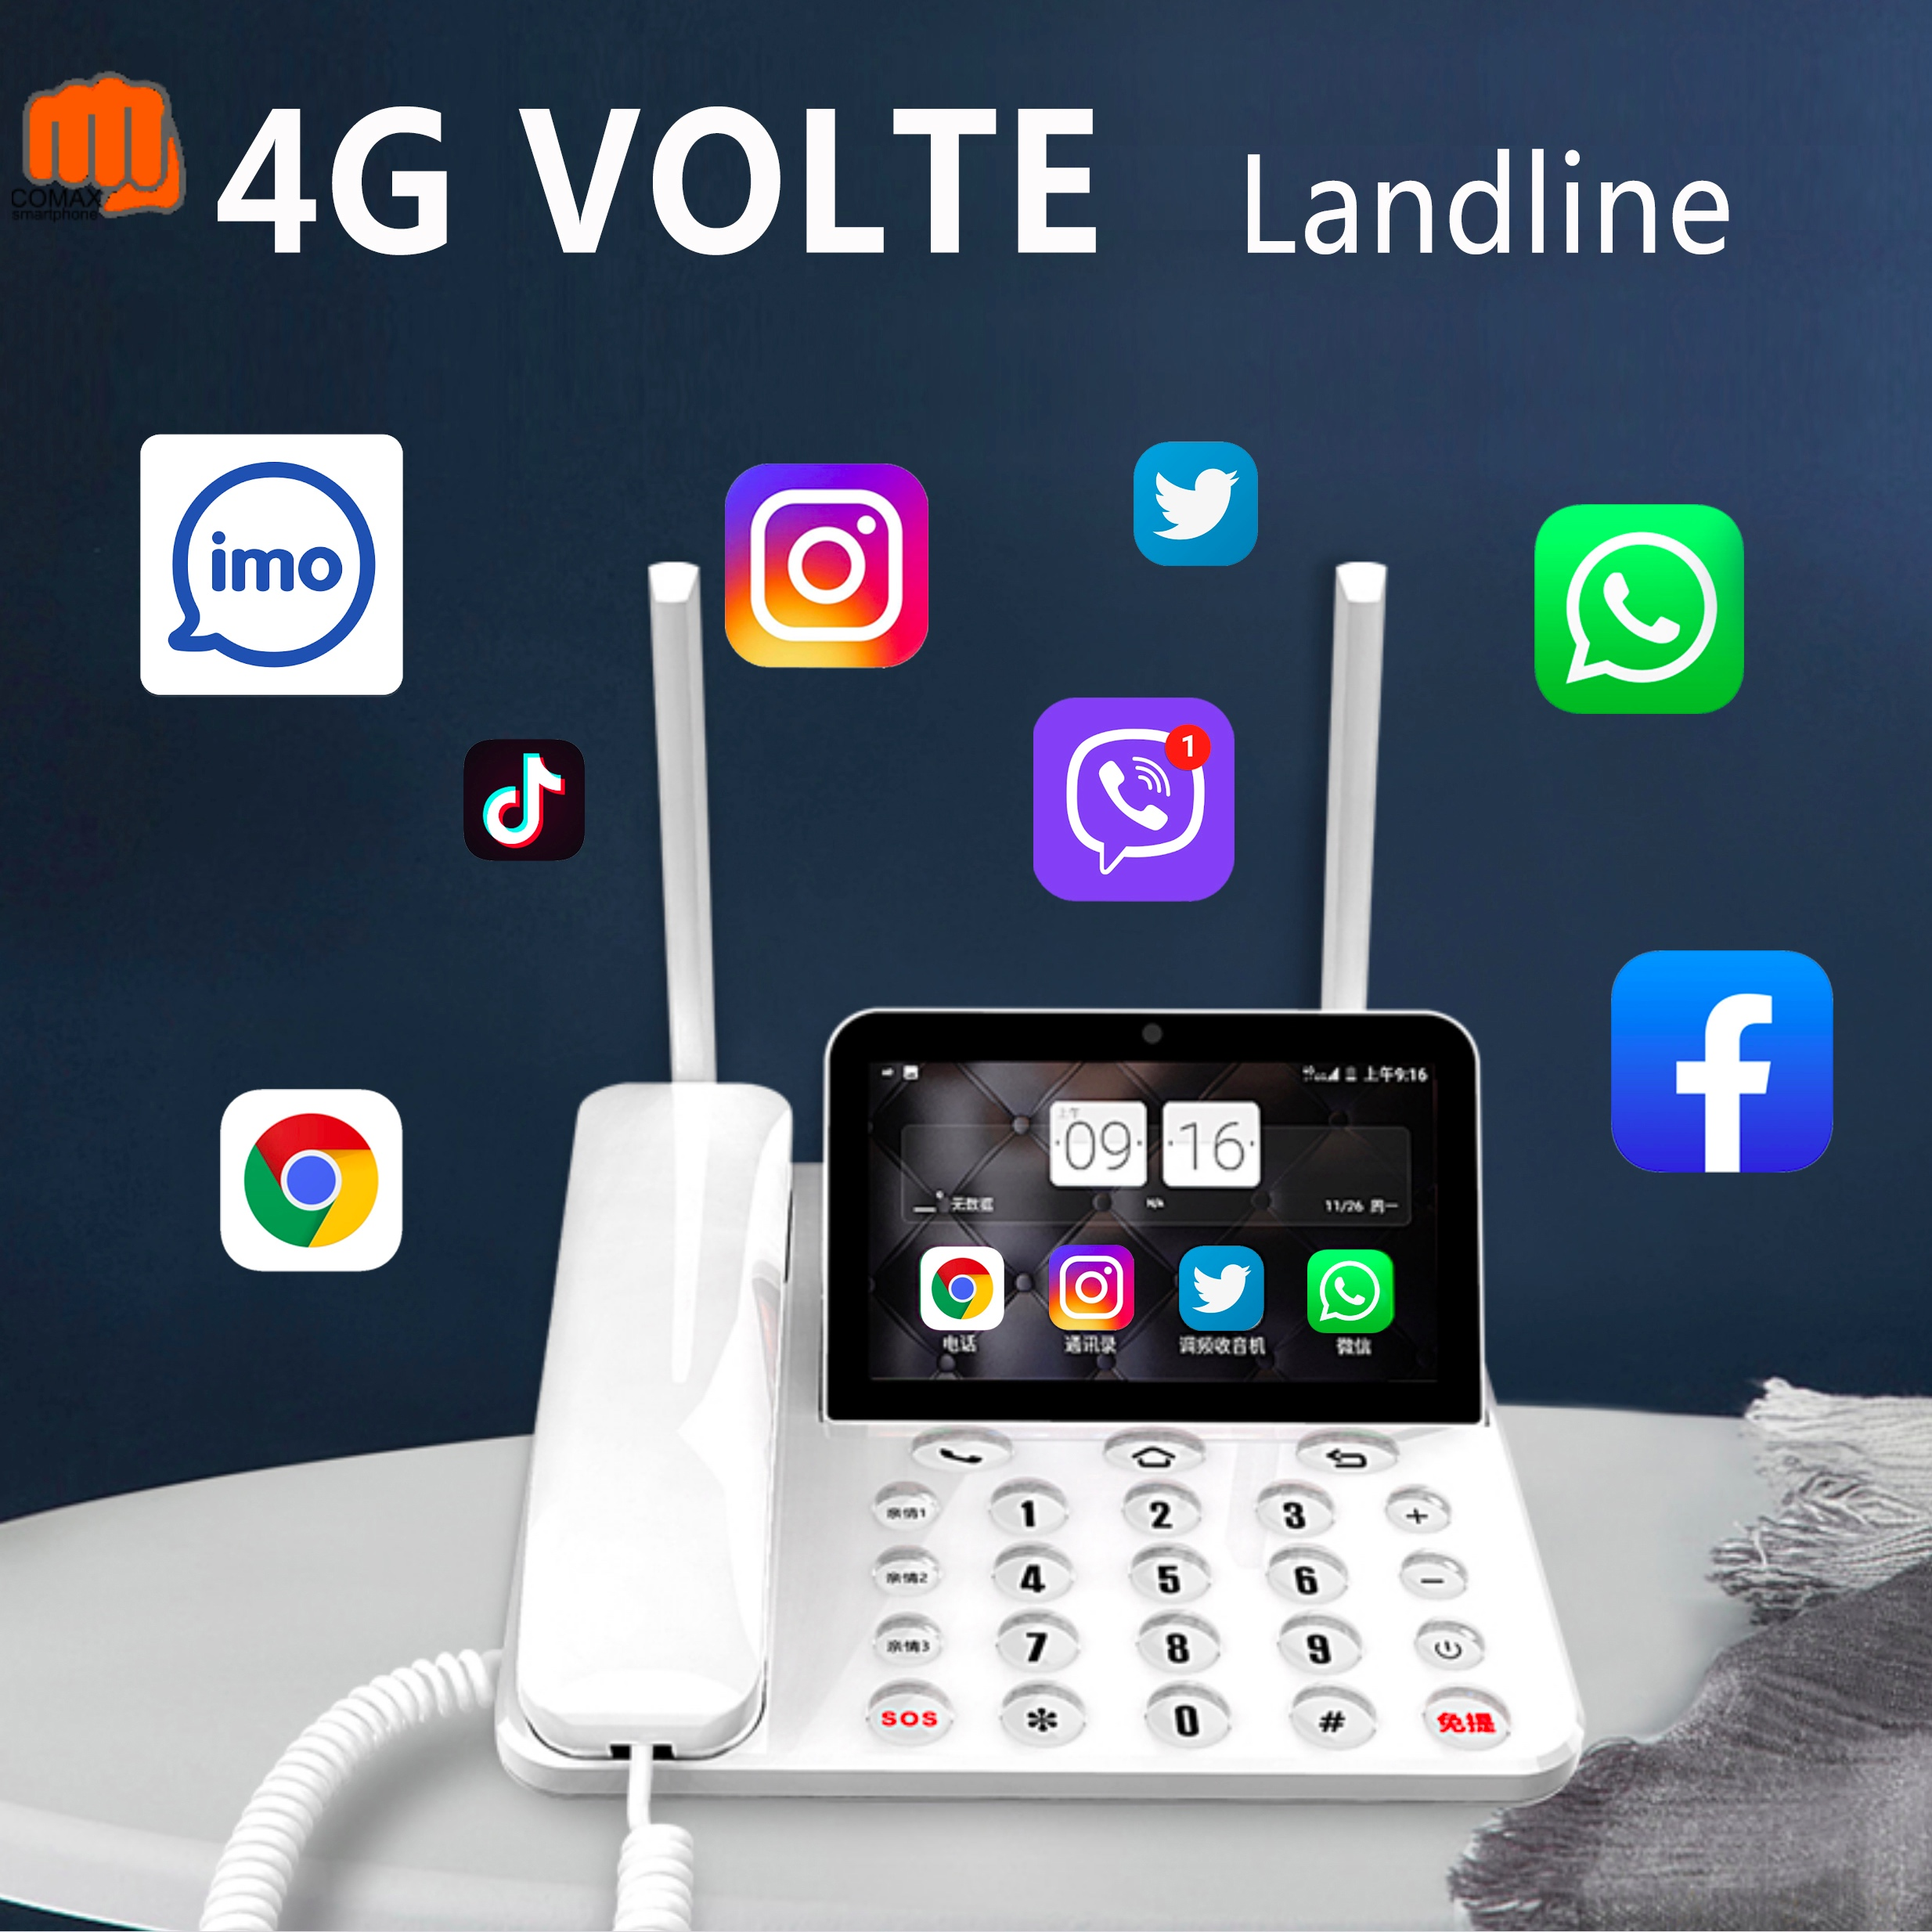 2020 New Smart 4G LTE Wireless Land Line Phone Android OS P1 Internation Language And Apps Remote Control Smart Phone